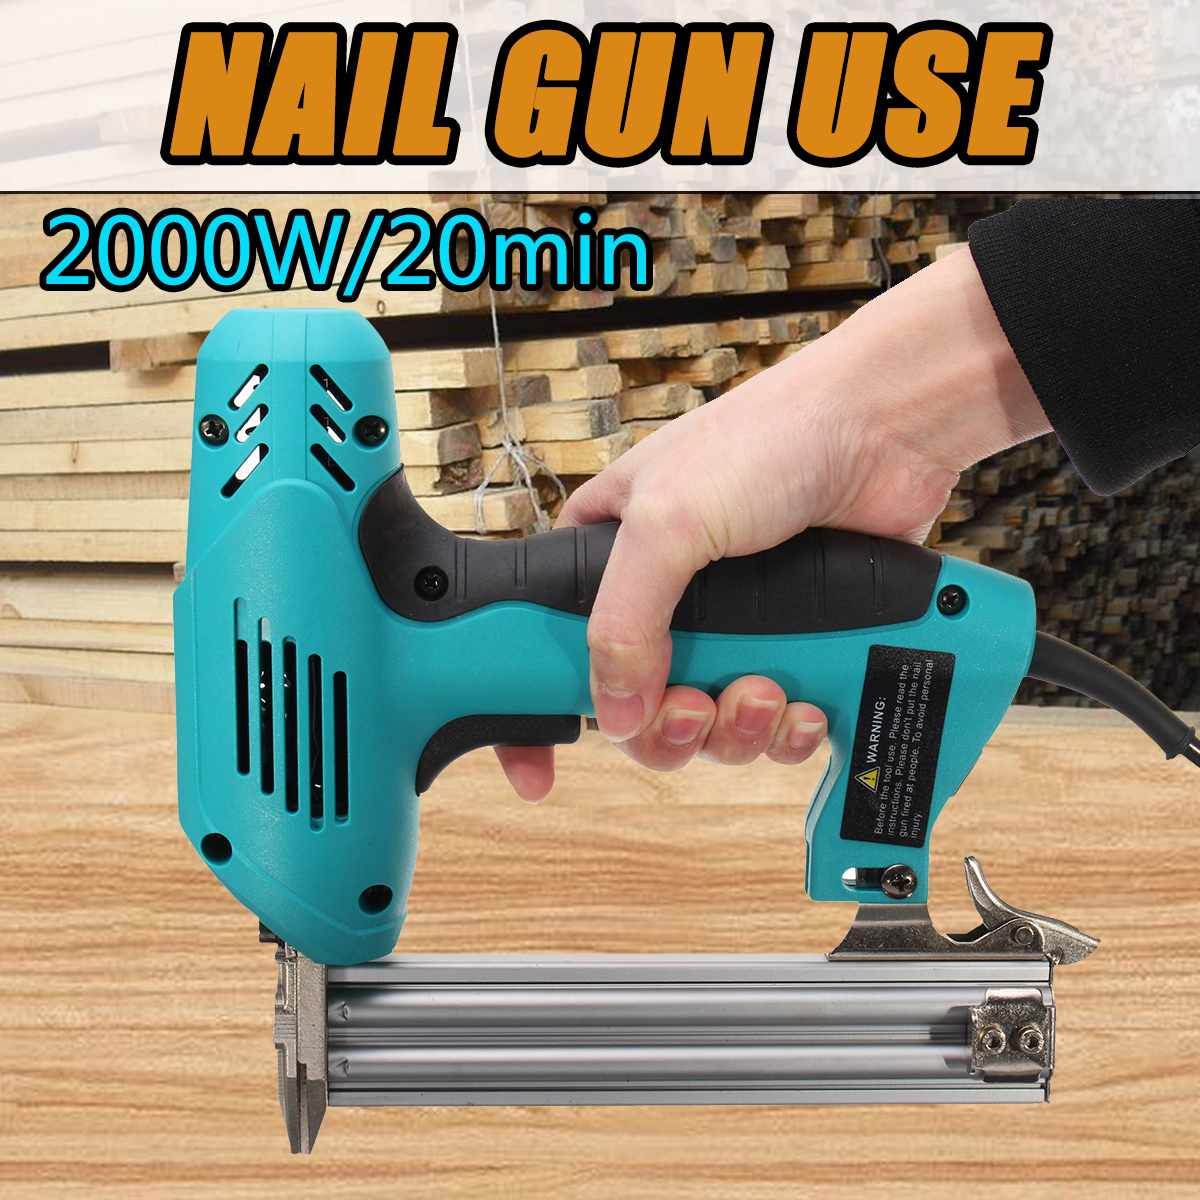 Doersupp Electric Straight Nail Gun 10-30mm High Power 220V 2000W Heavy-Duty Woodworking Tool Electrical Staple Nail